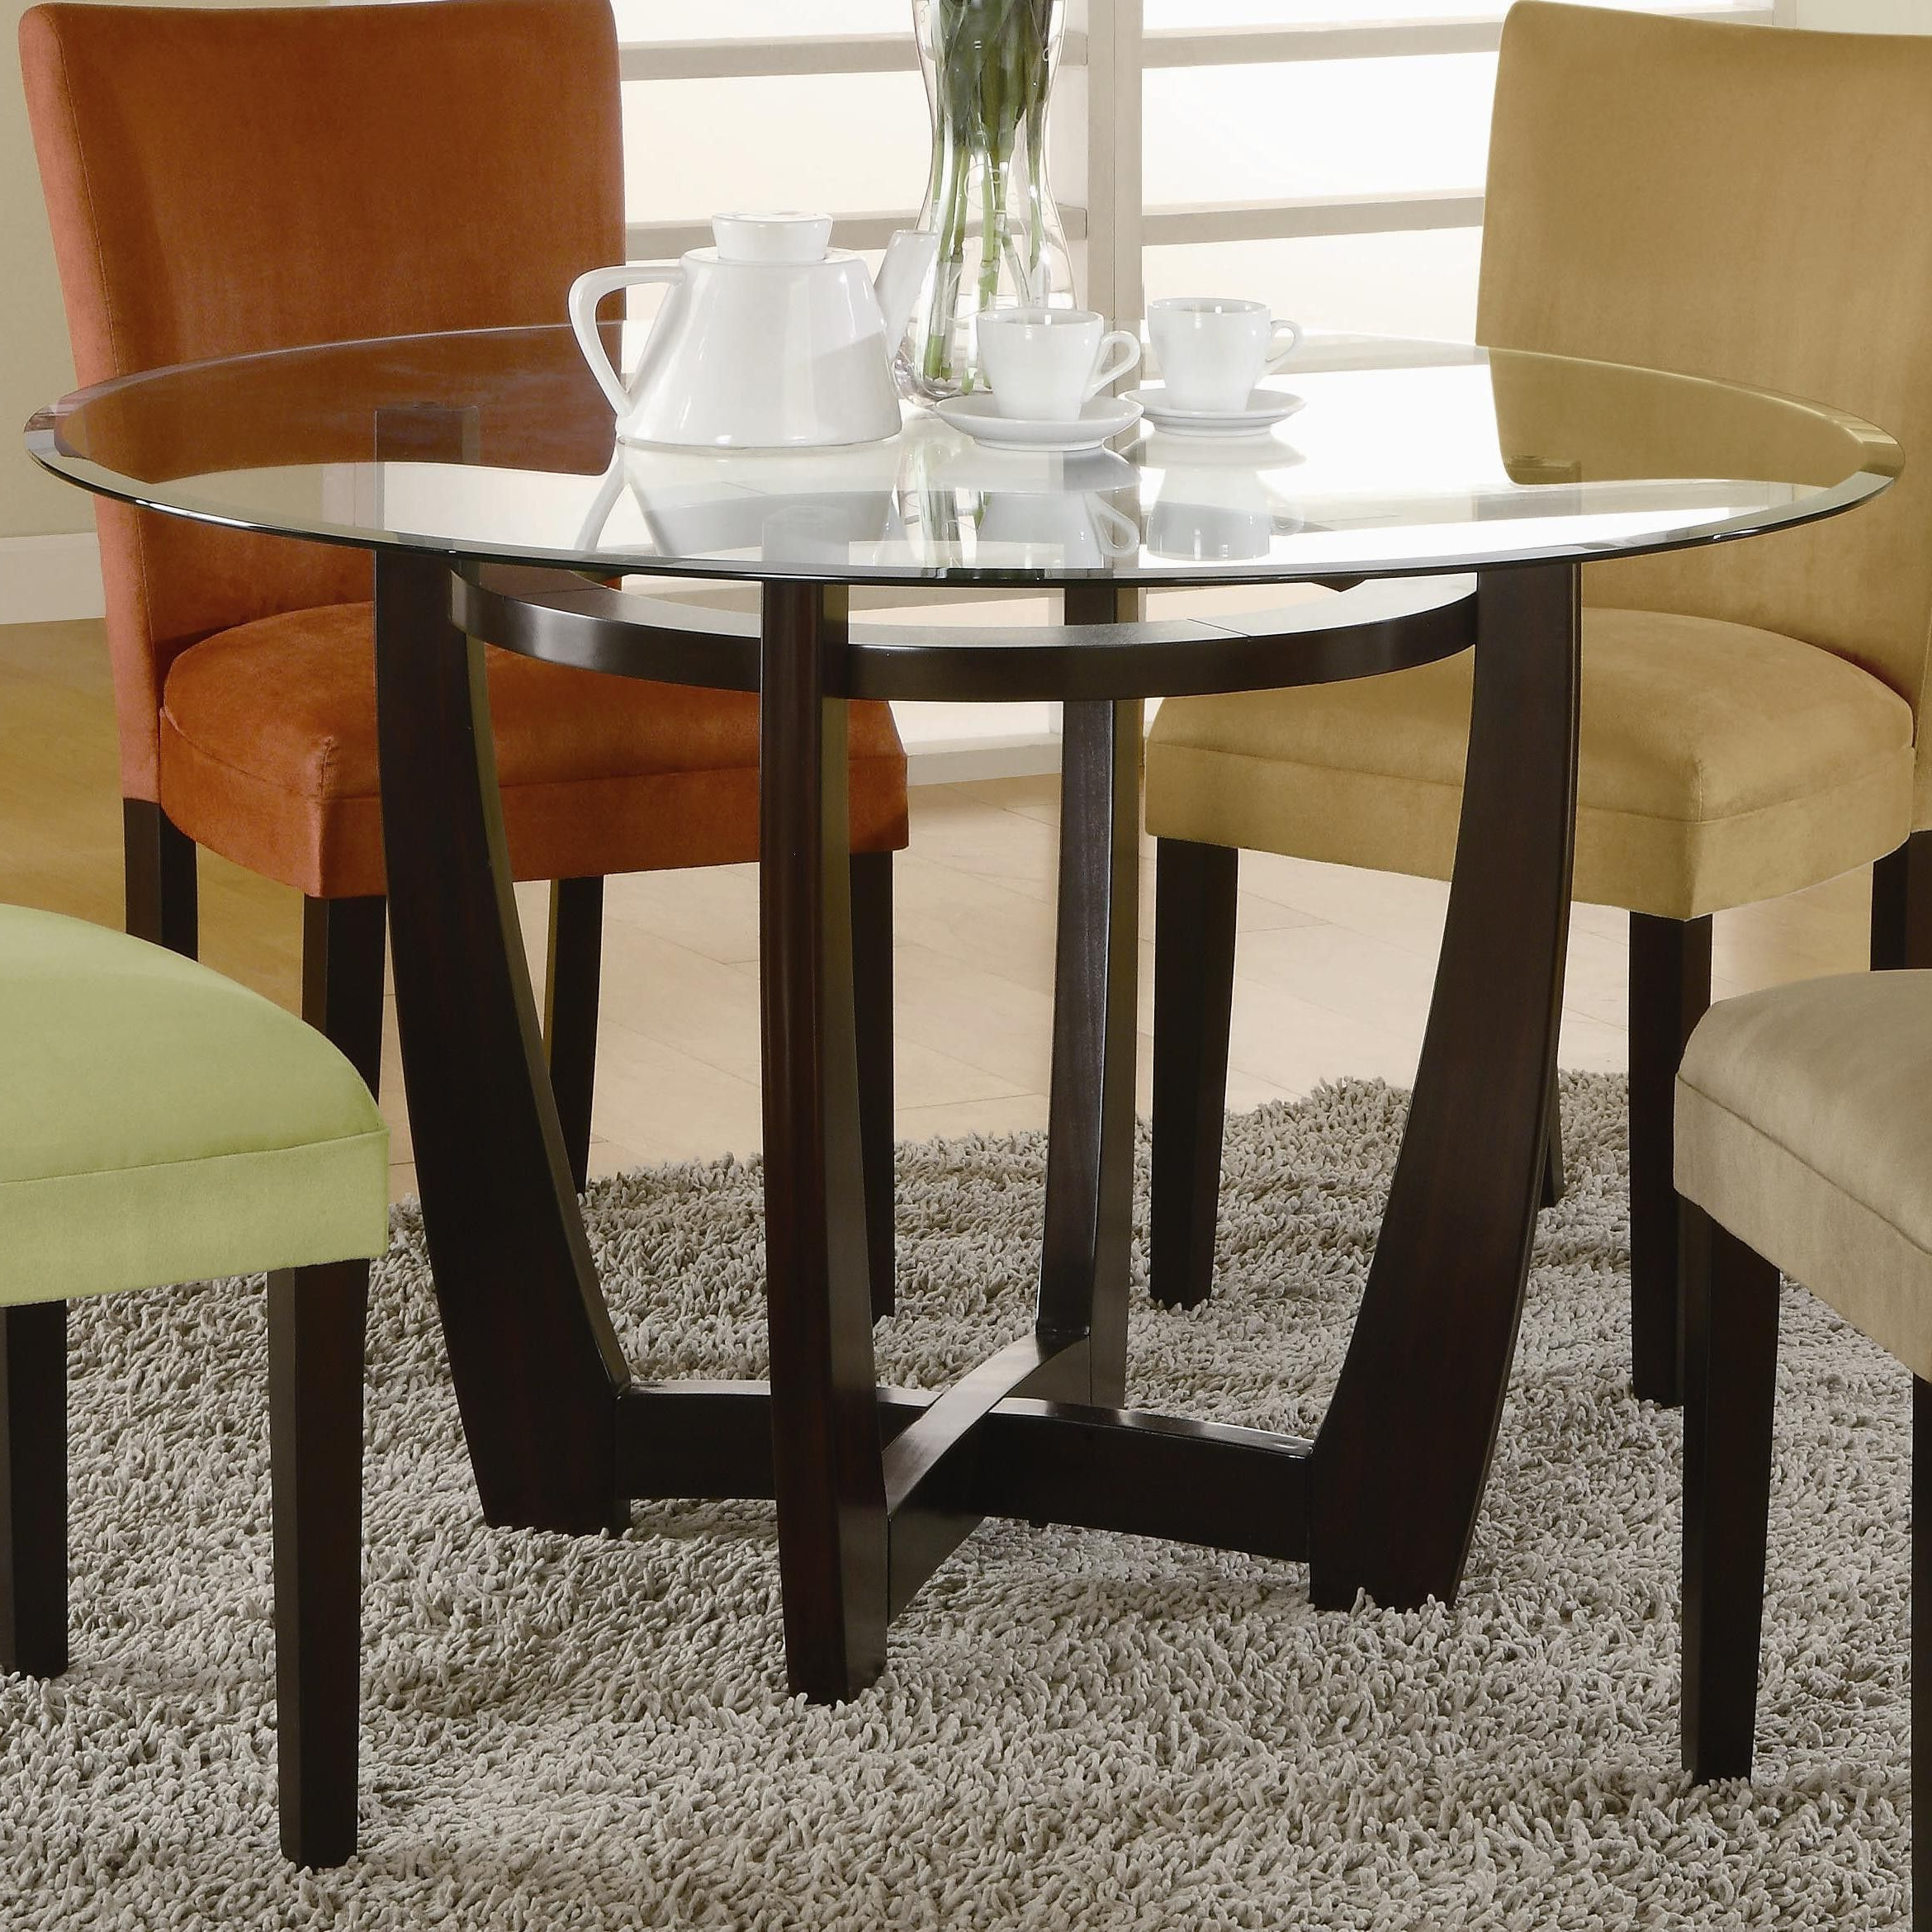 Round Glass Top Dining Table With Wooden Base Home Within Preferred Round Dining Tables With Glass Top (View 13 of 30)